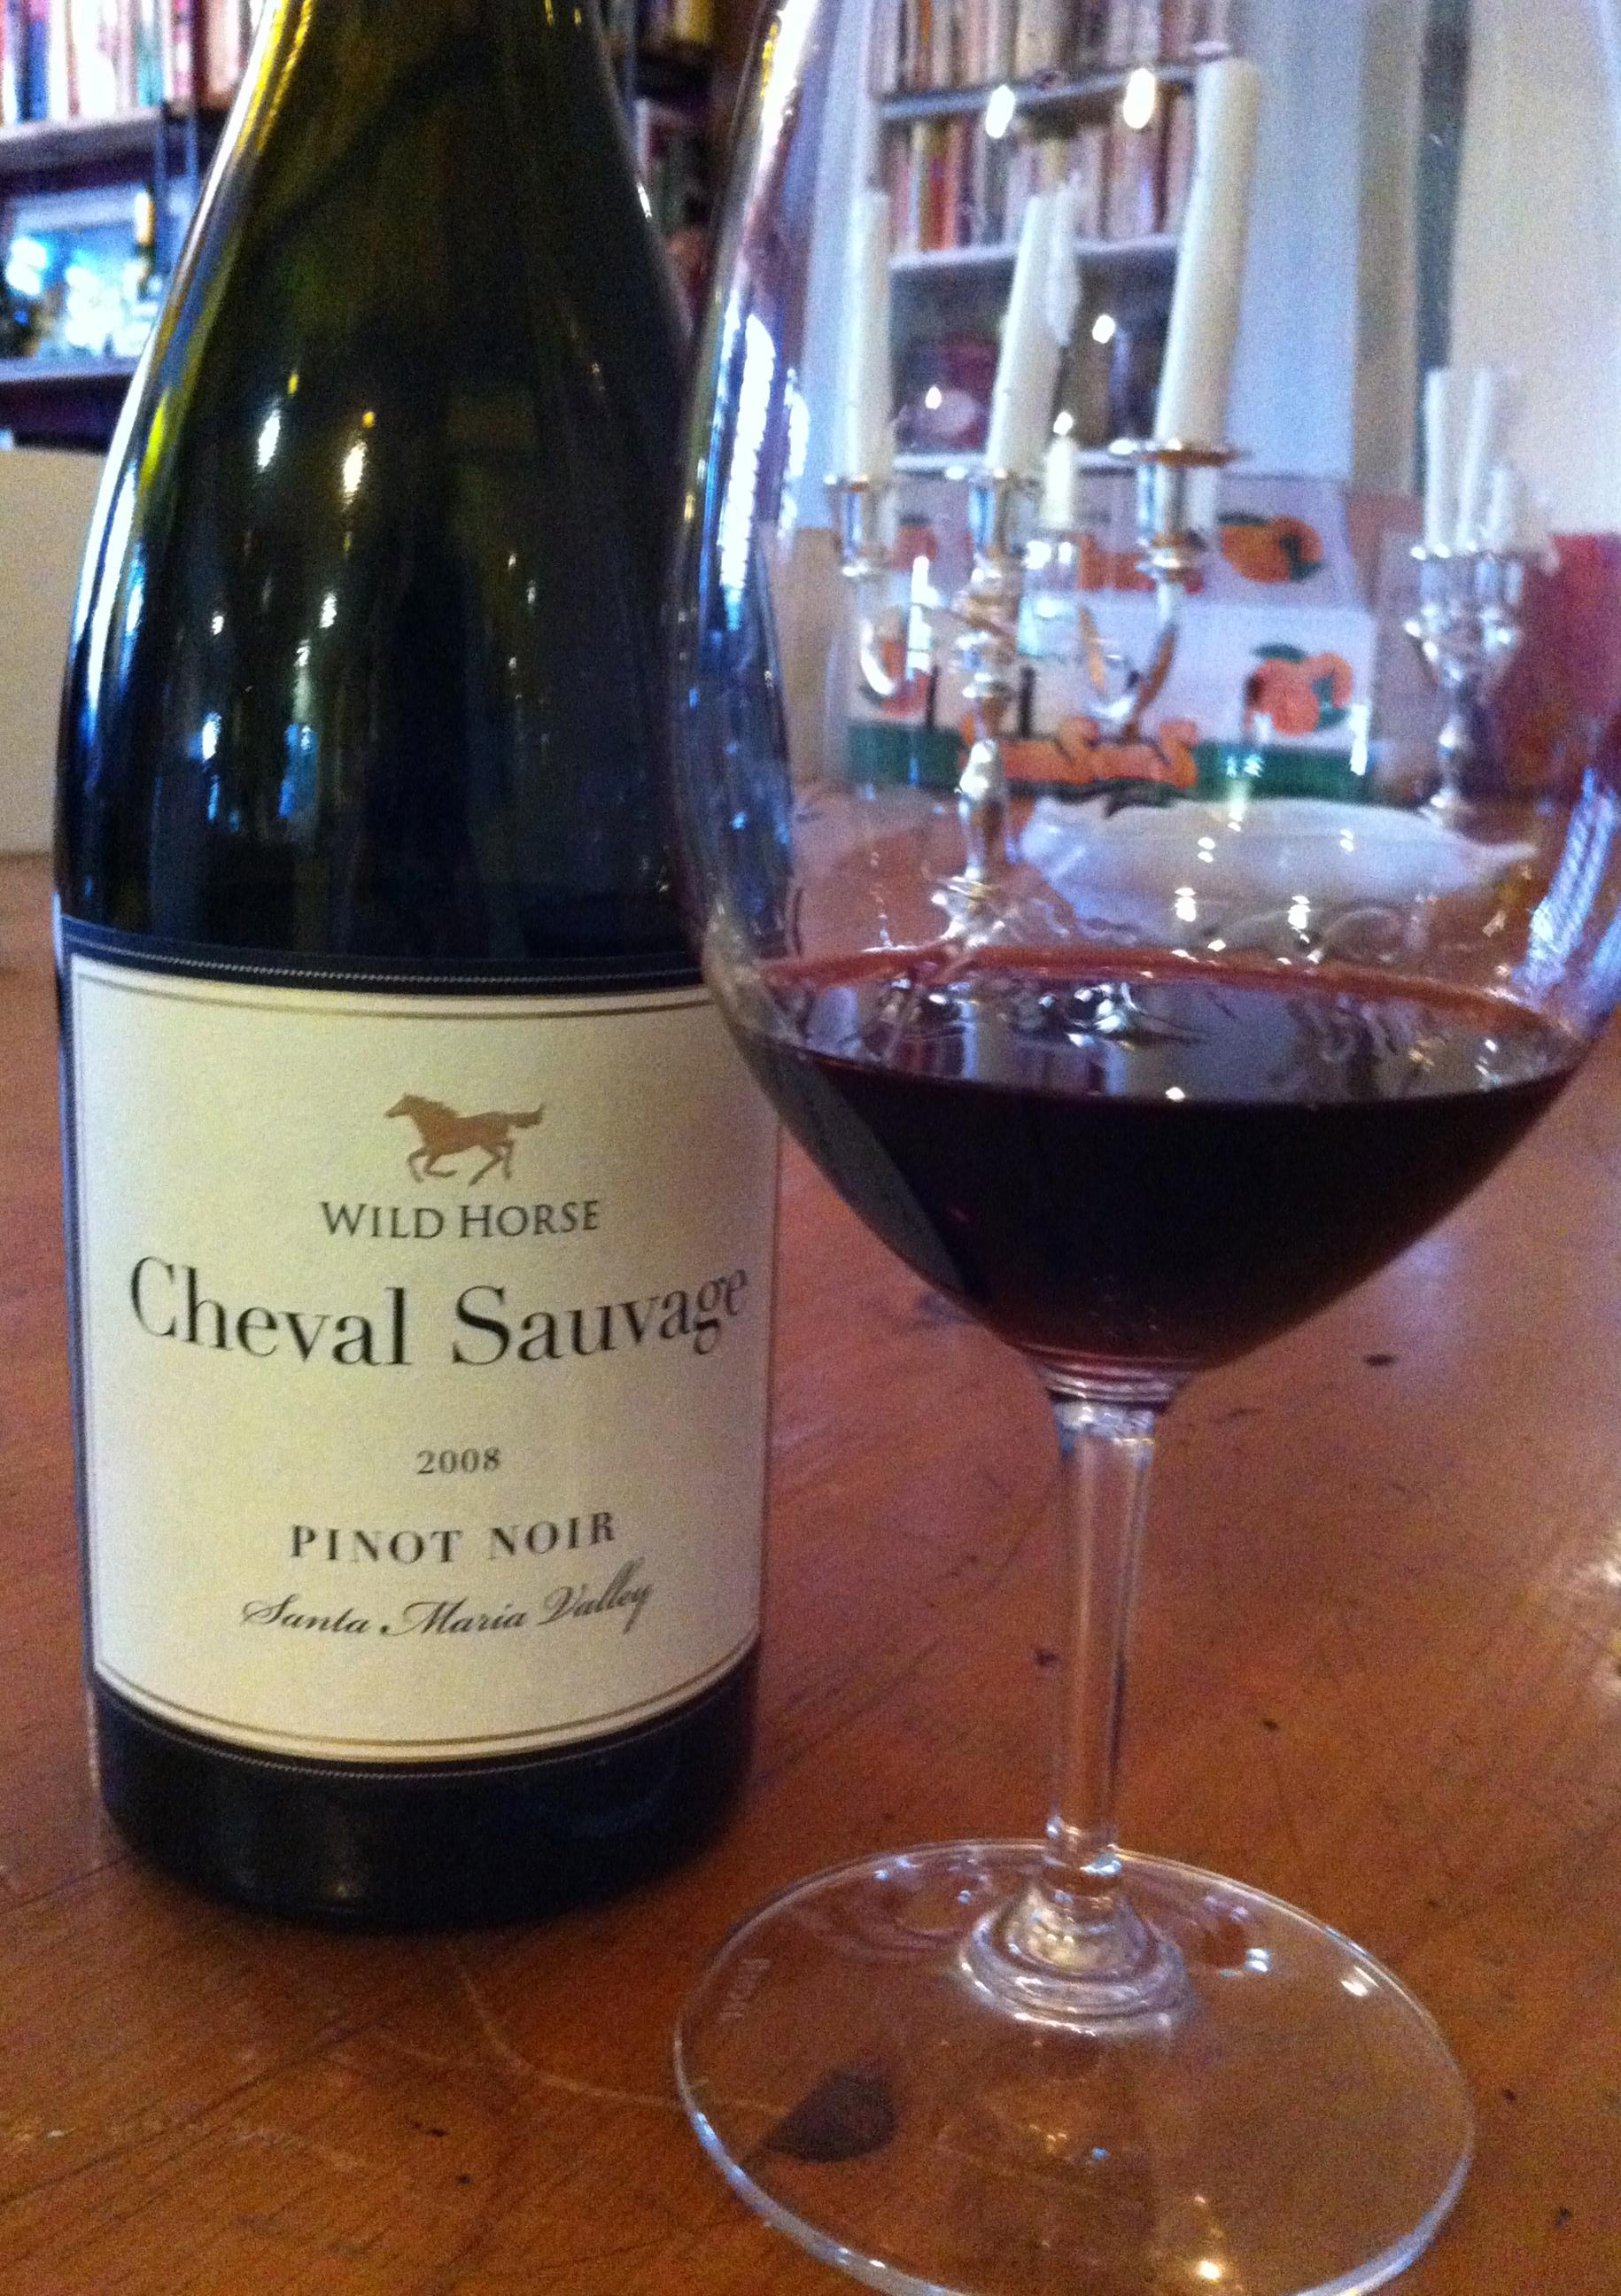 Wild Horse Cheval Sauvage Pinot Noir